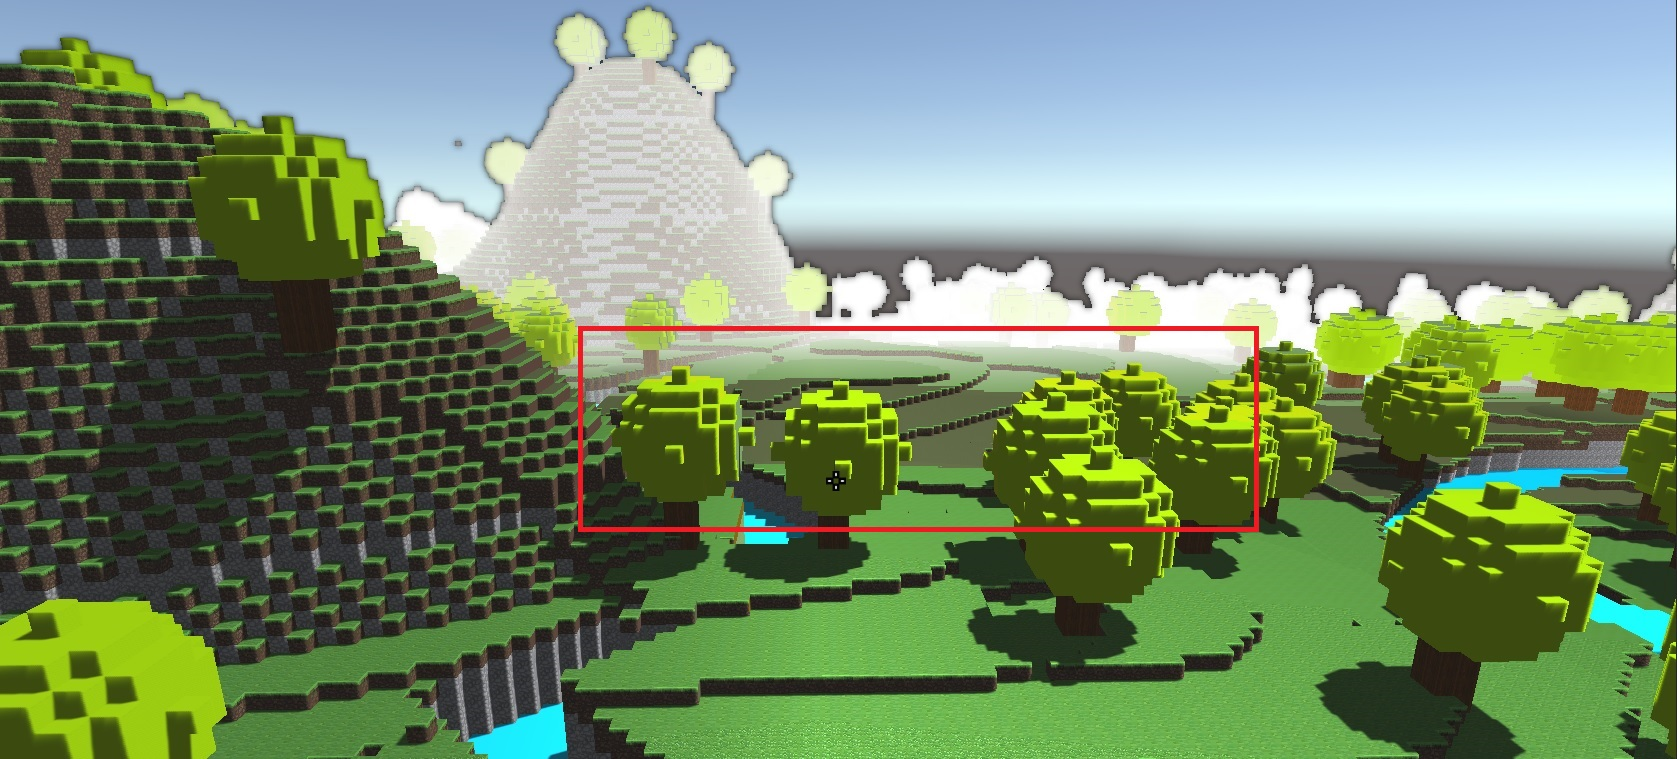 Graphic issue in voxel map   Unity Answers